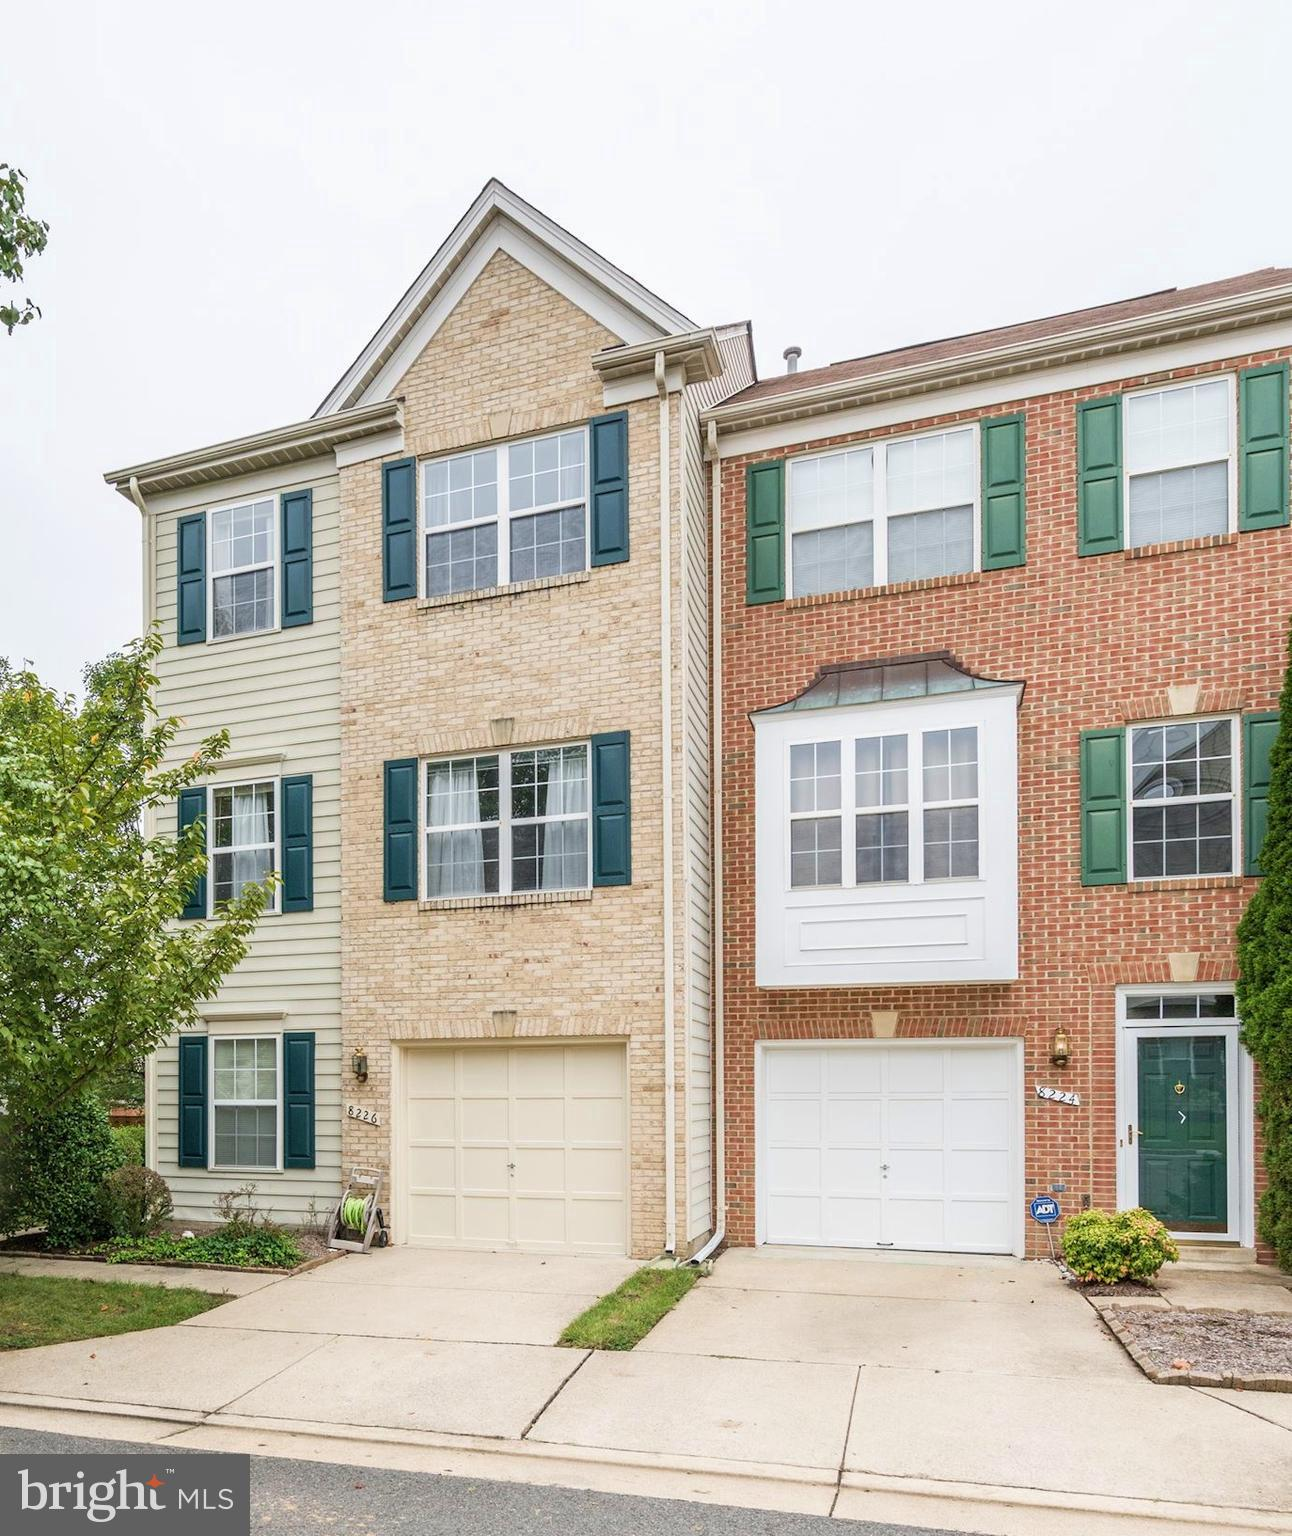 END-UNIT 1-car garage TH on best lot in Gunston Corner! Enjoy >10k in landscaping/patio upgrades + privacy from mature trees. Walk out to deck from KIT or relax in lg family rm w/gas FP.  KIT w/SS appliances, granite cntrs + island. New pipes, fixtures, water htr. Boasts spacious MBR w/walk in closets + vaulted ceilings - BA freshly painted! Mins from VRE, 95, retail - schedule a tour today!